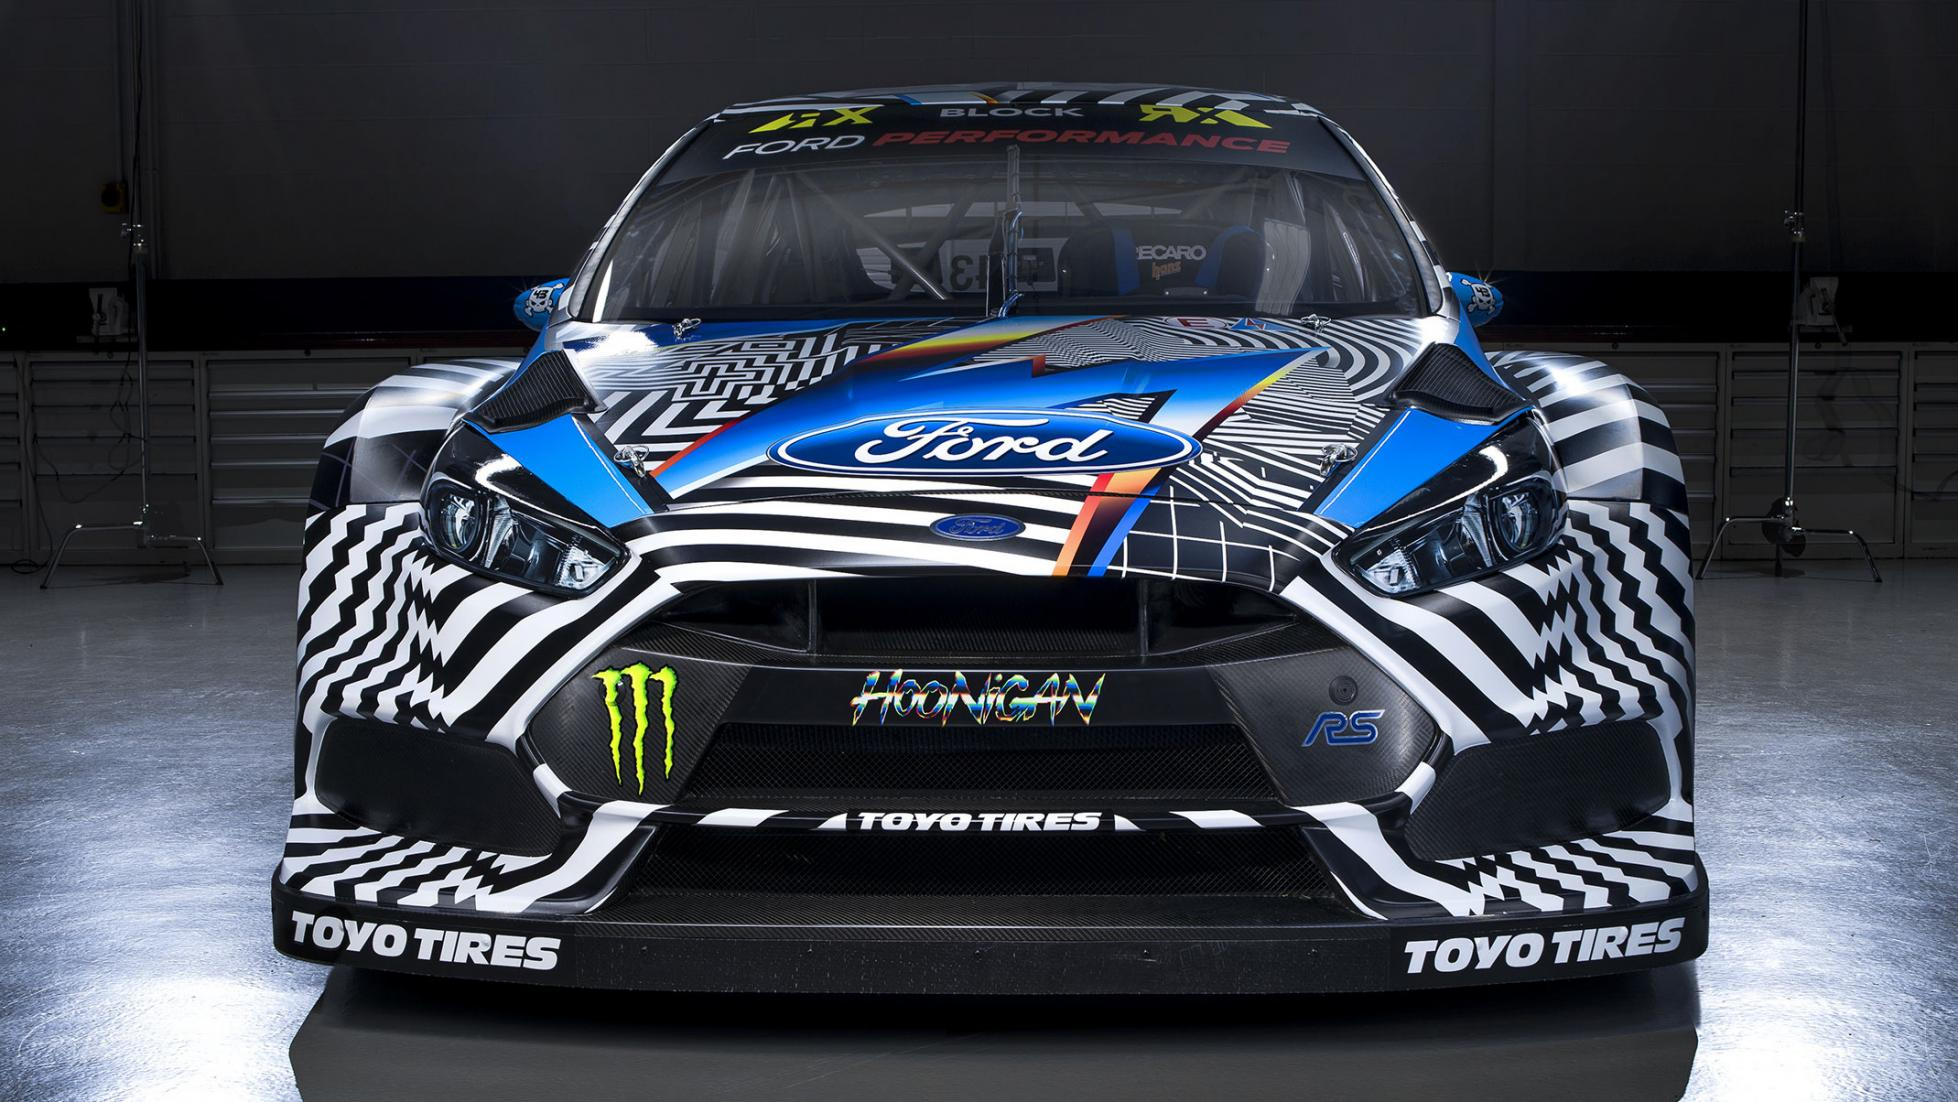 Ken Block Debuts New Livery Designed By Artist Felix